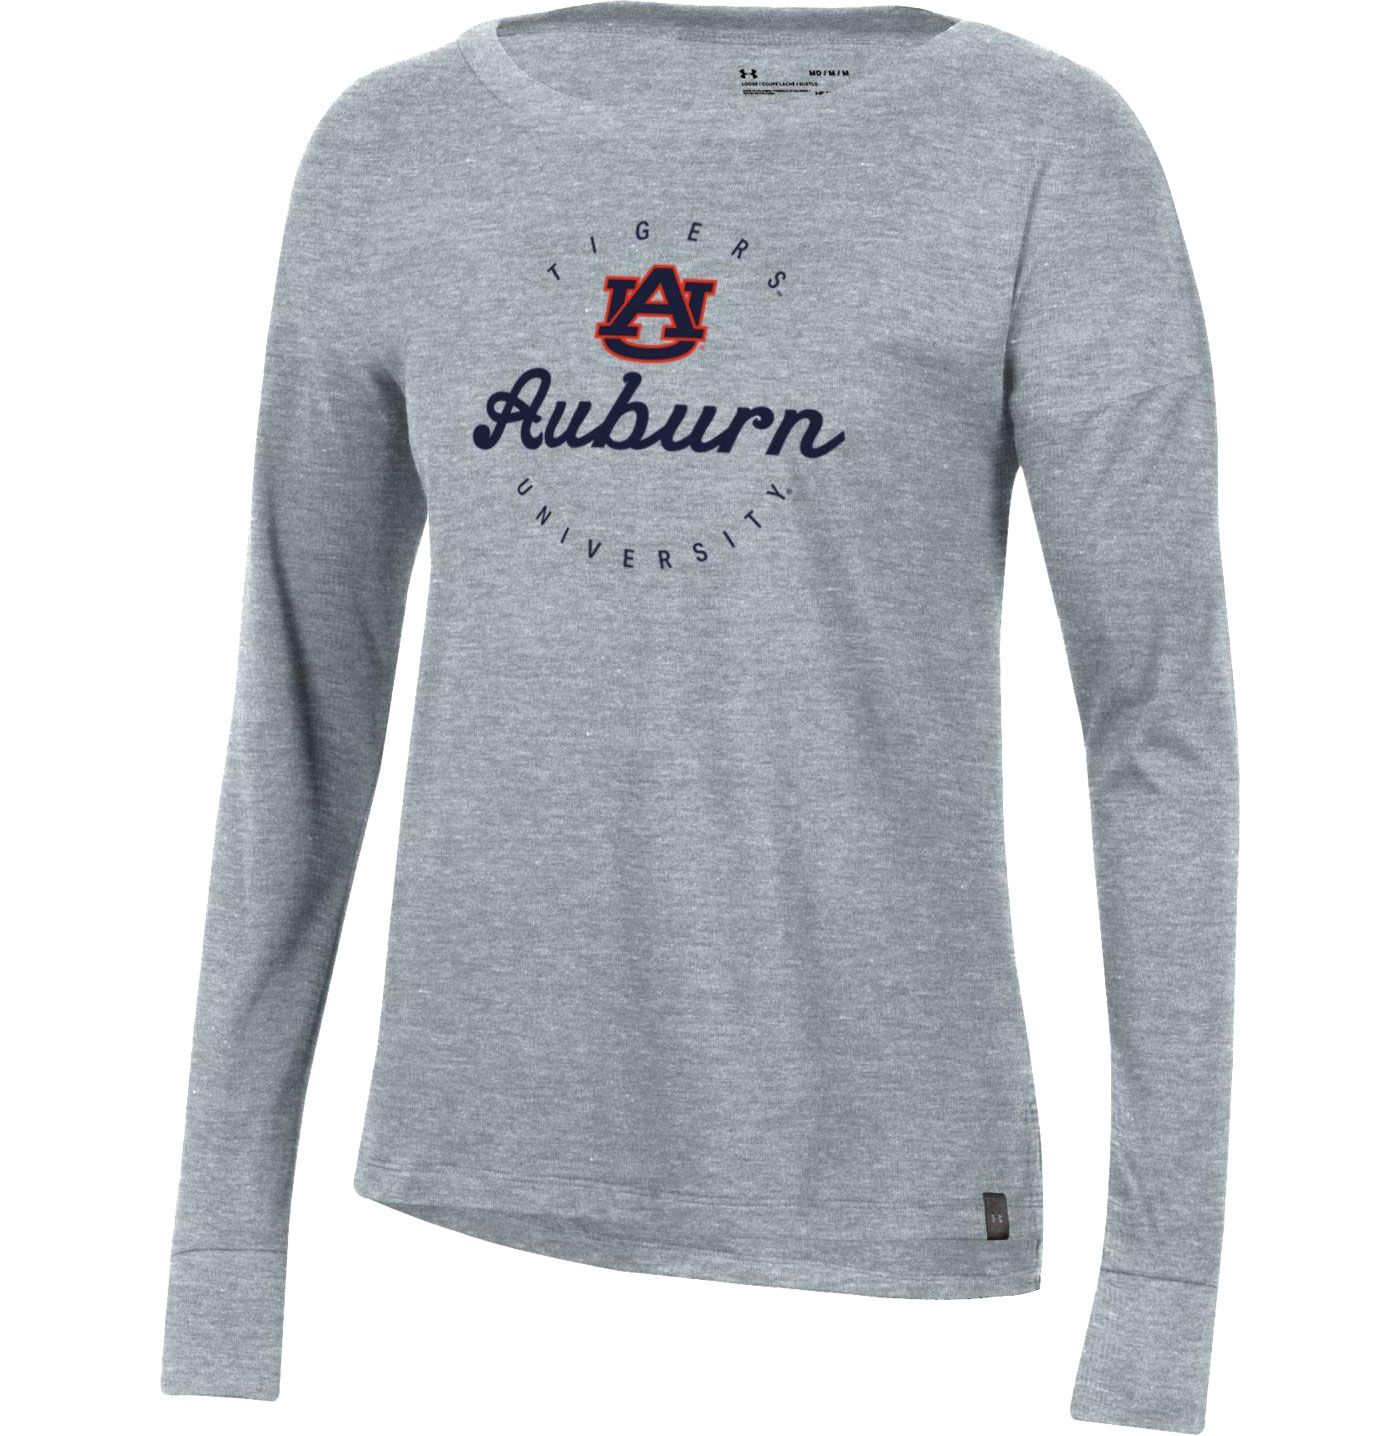 Under Armour Women's Auburn Tigers Grey Performance Cotton Long Sleeve T-Shirt